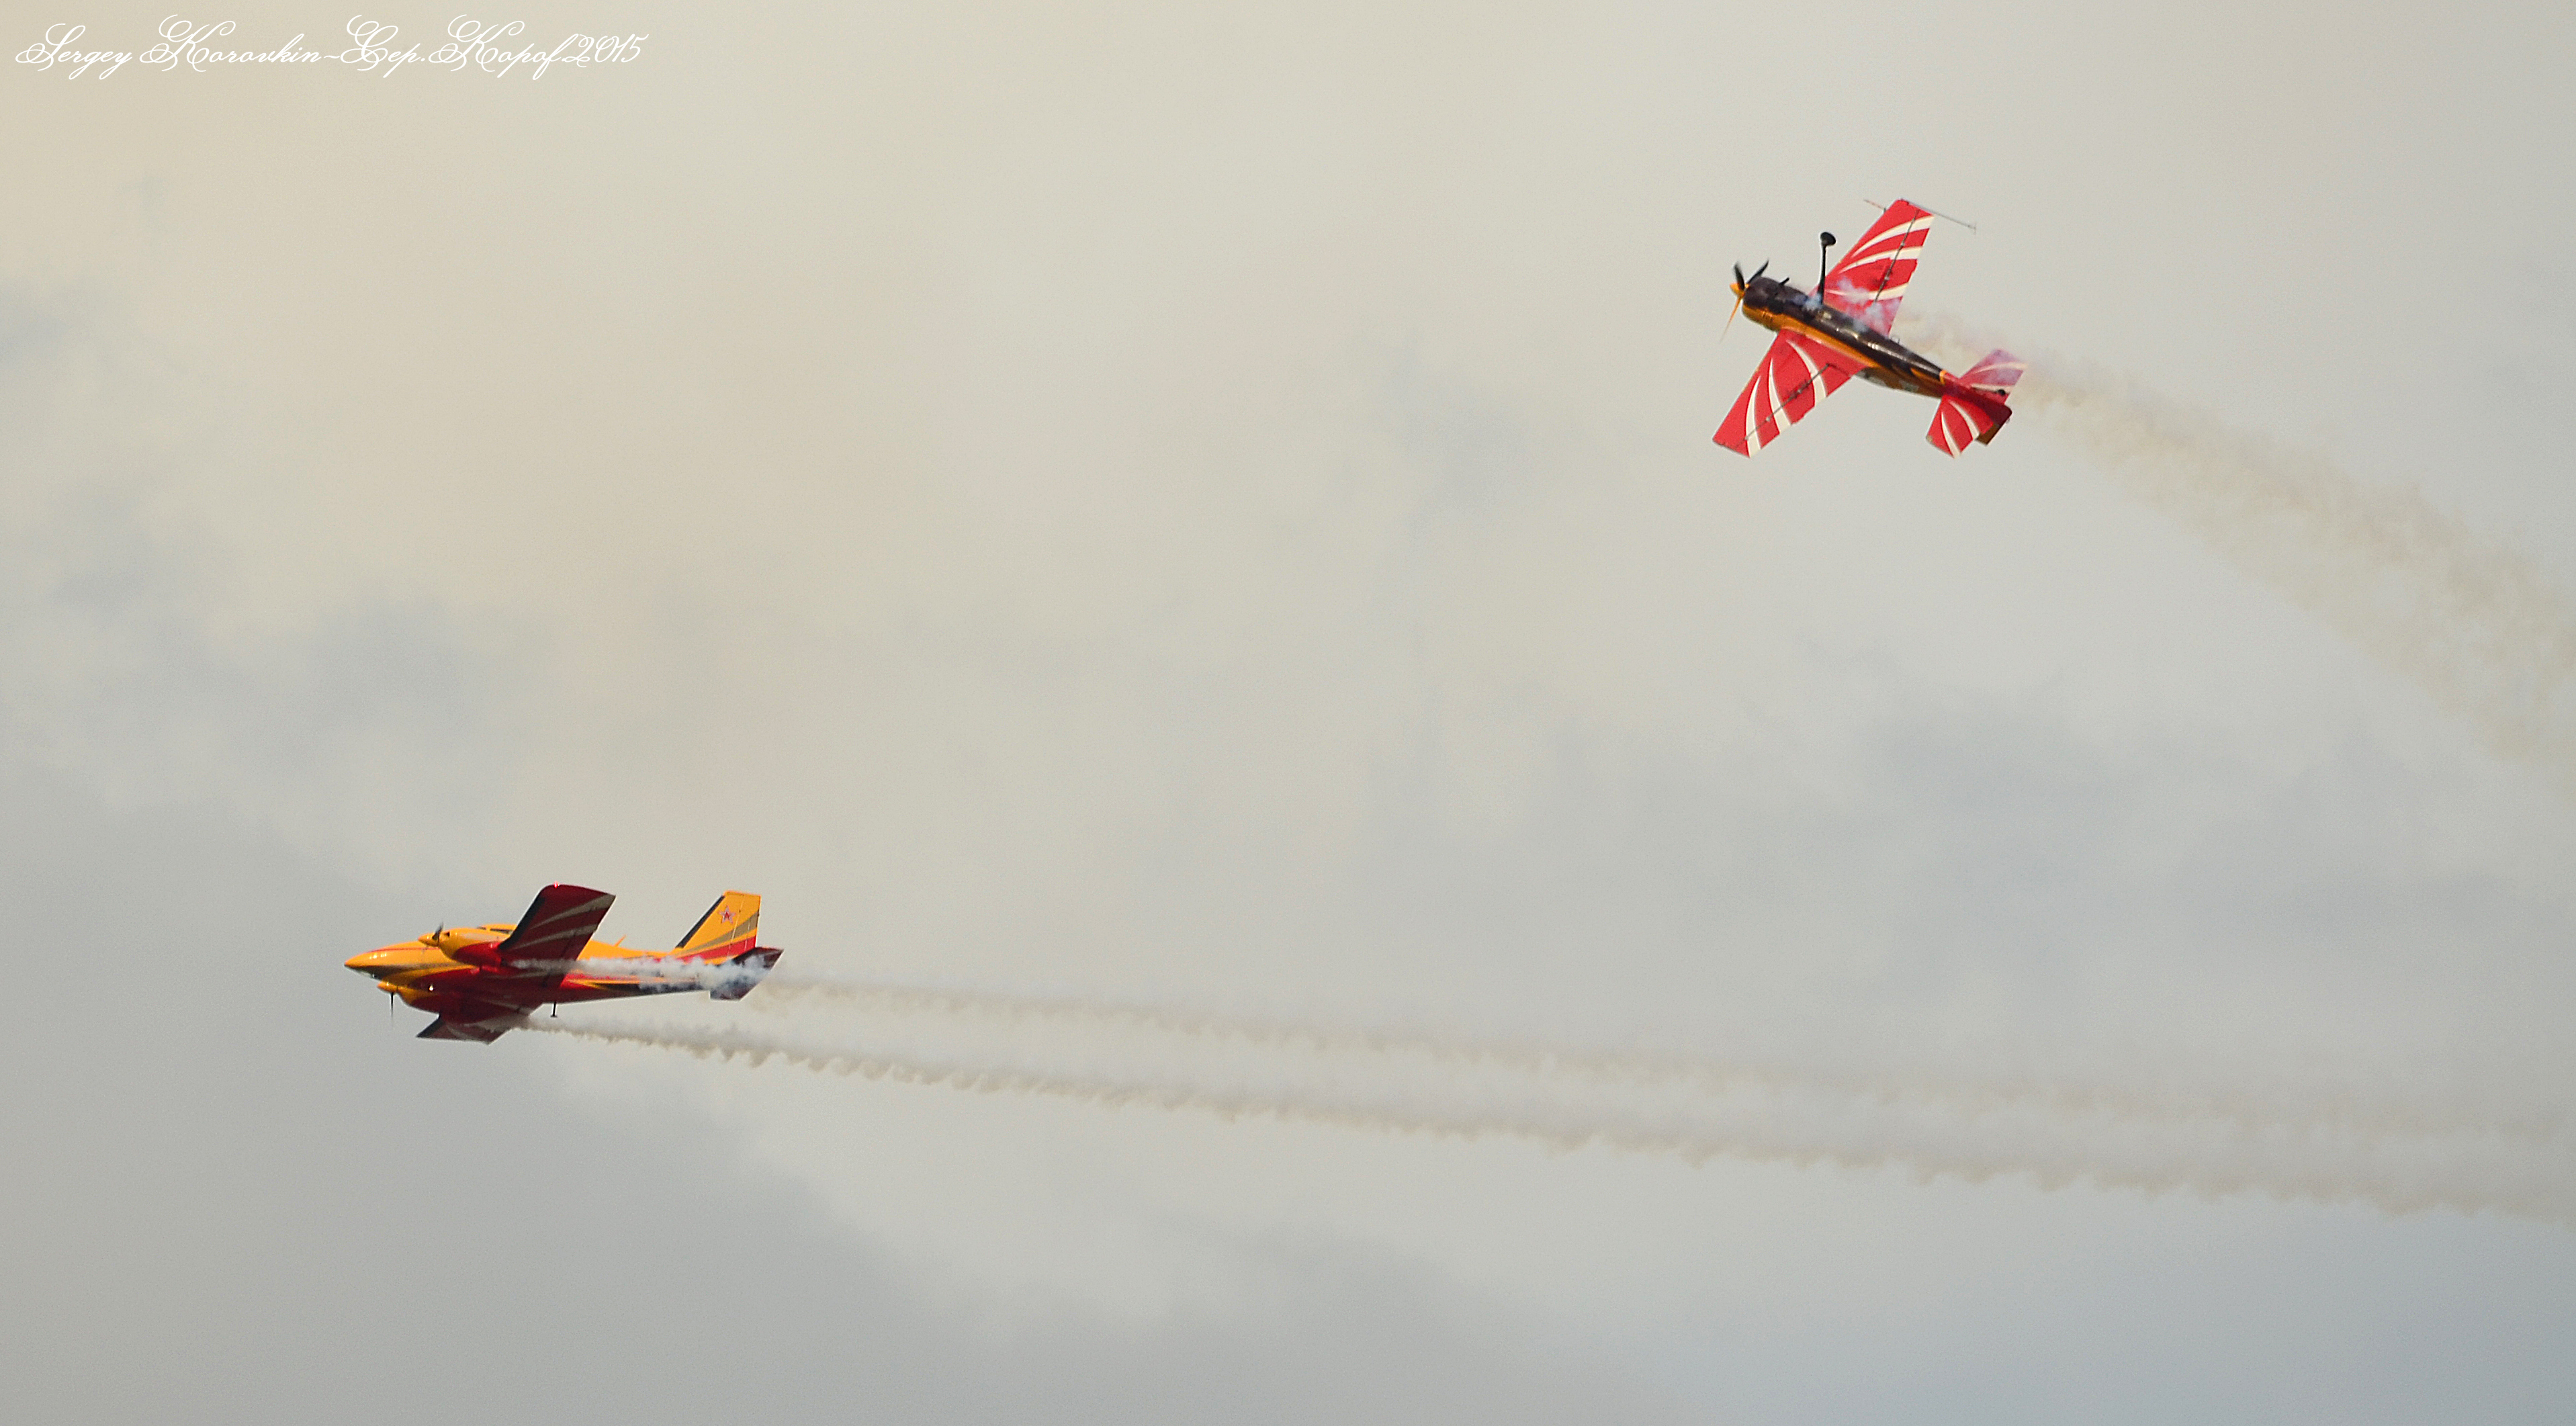 MAKS-2015 Air Show: Photos and Discussion - Page 3 0_17be08_eadff408_orig